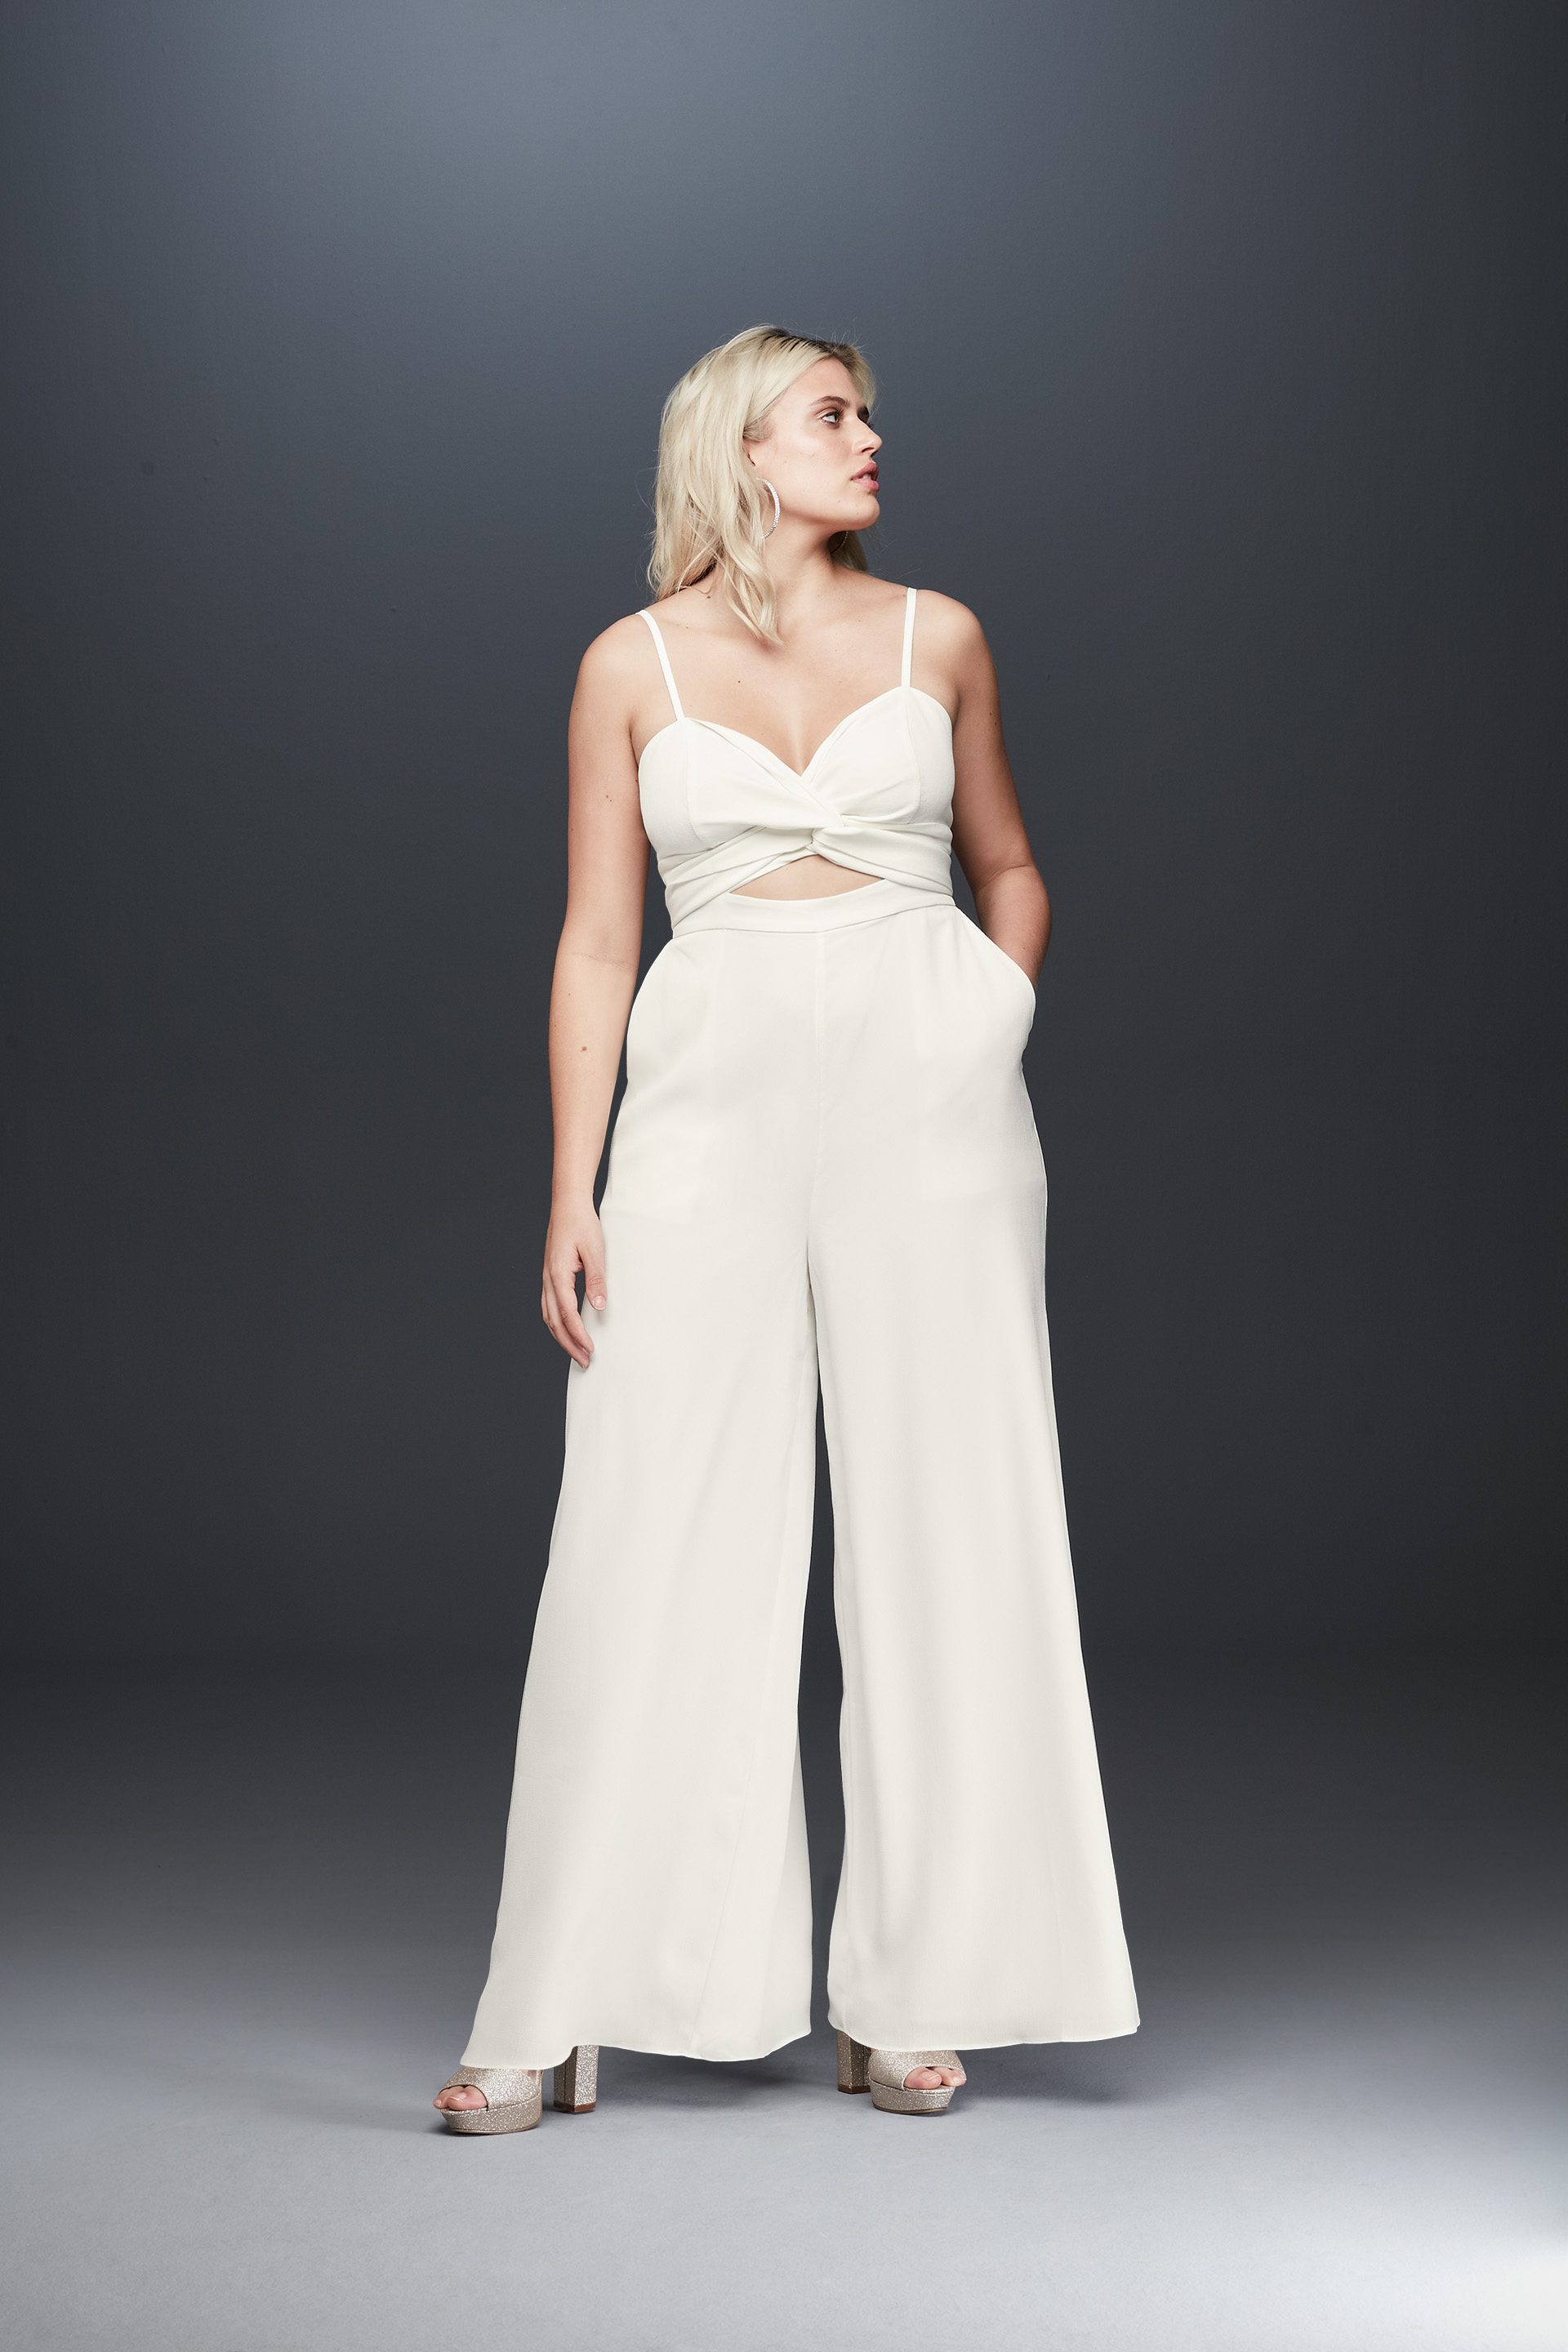 Bride looking away in spaghetti strap bridal jumpsuit from Fame & Partners x David's Bridal collection